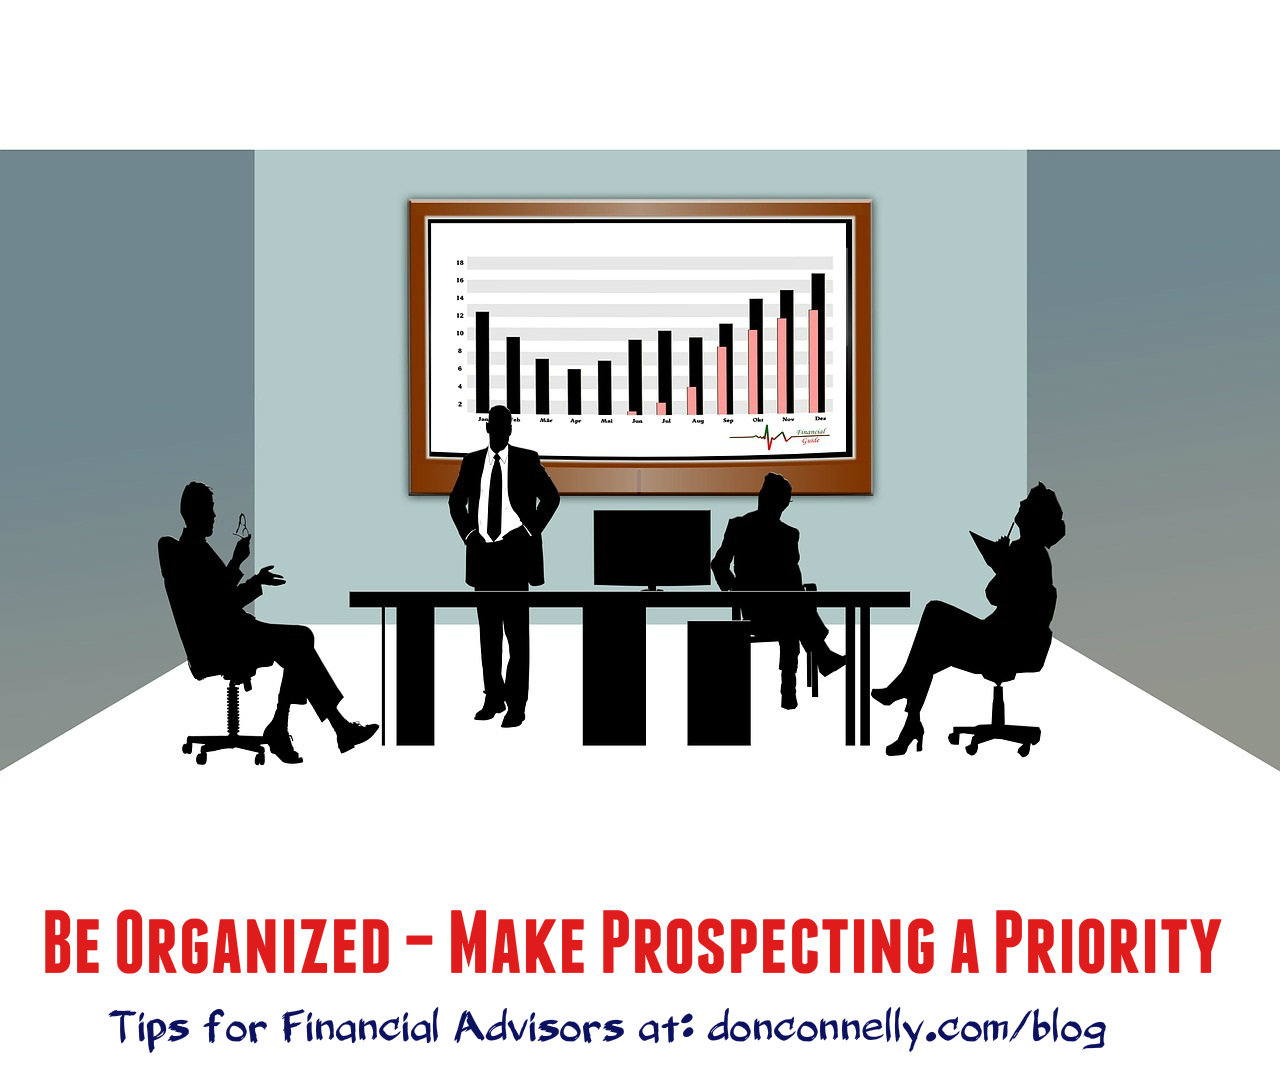 Be Organized – Make Prospecting a Priority